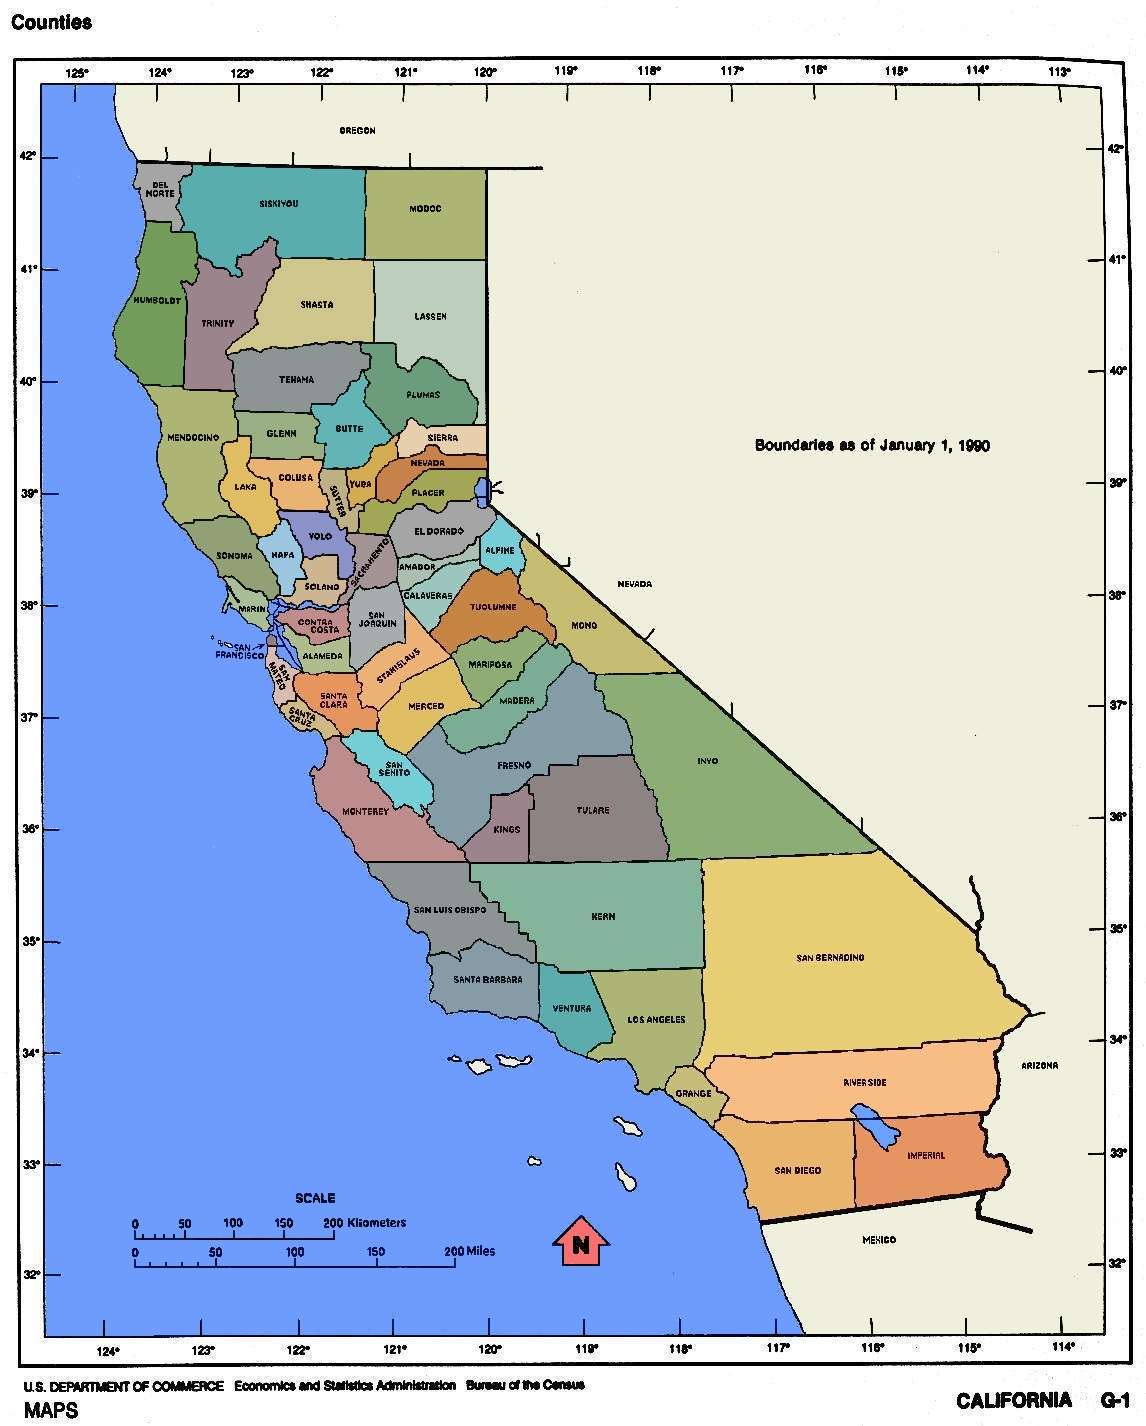 Map Of Northern California Cities And Towns - Klipy - Map Of Northern California Cities And Towns